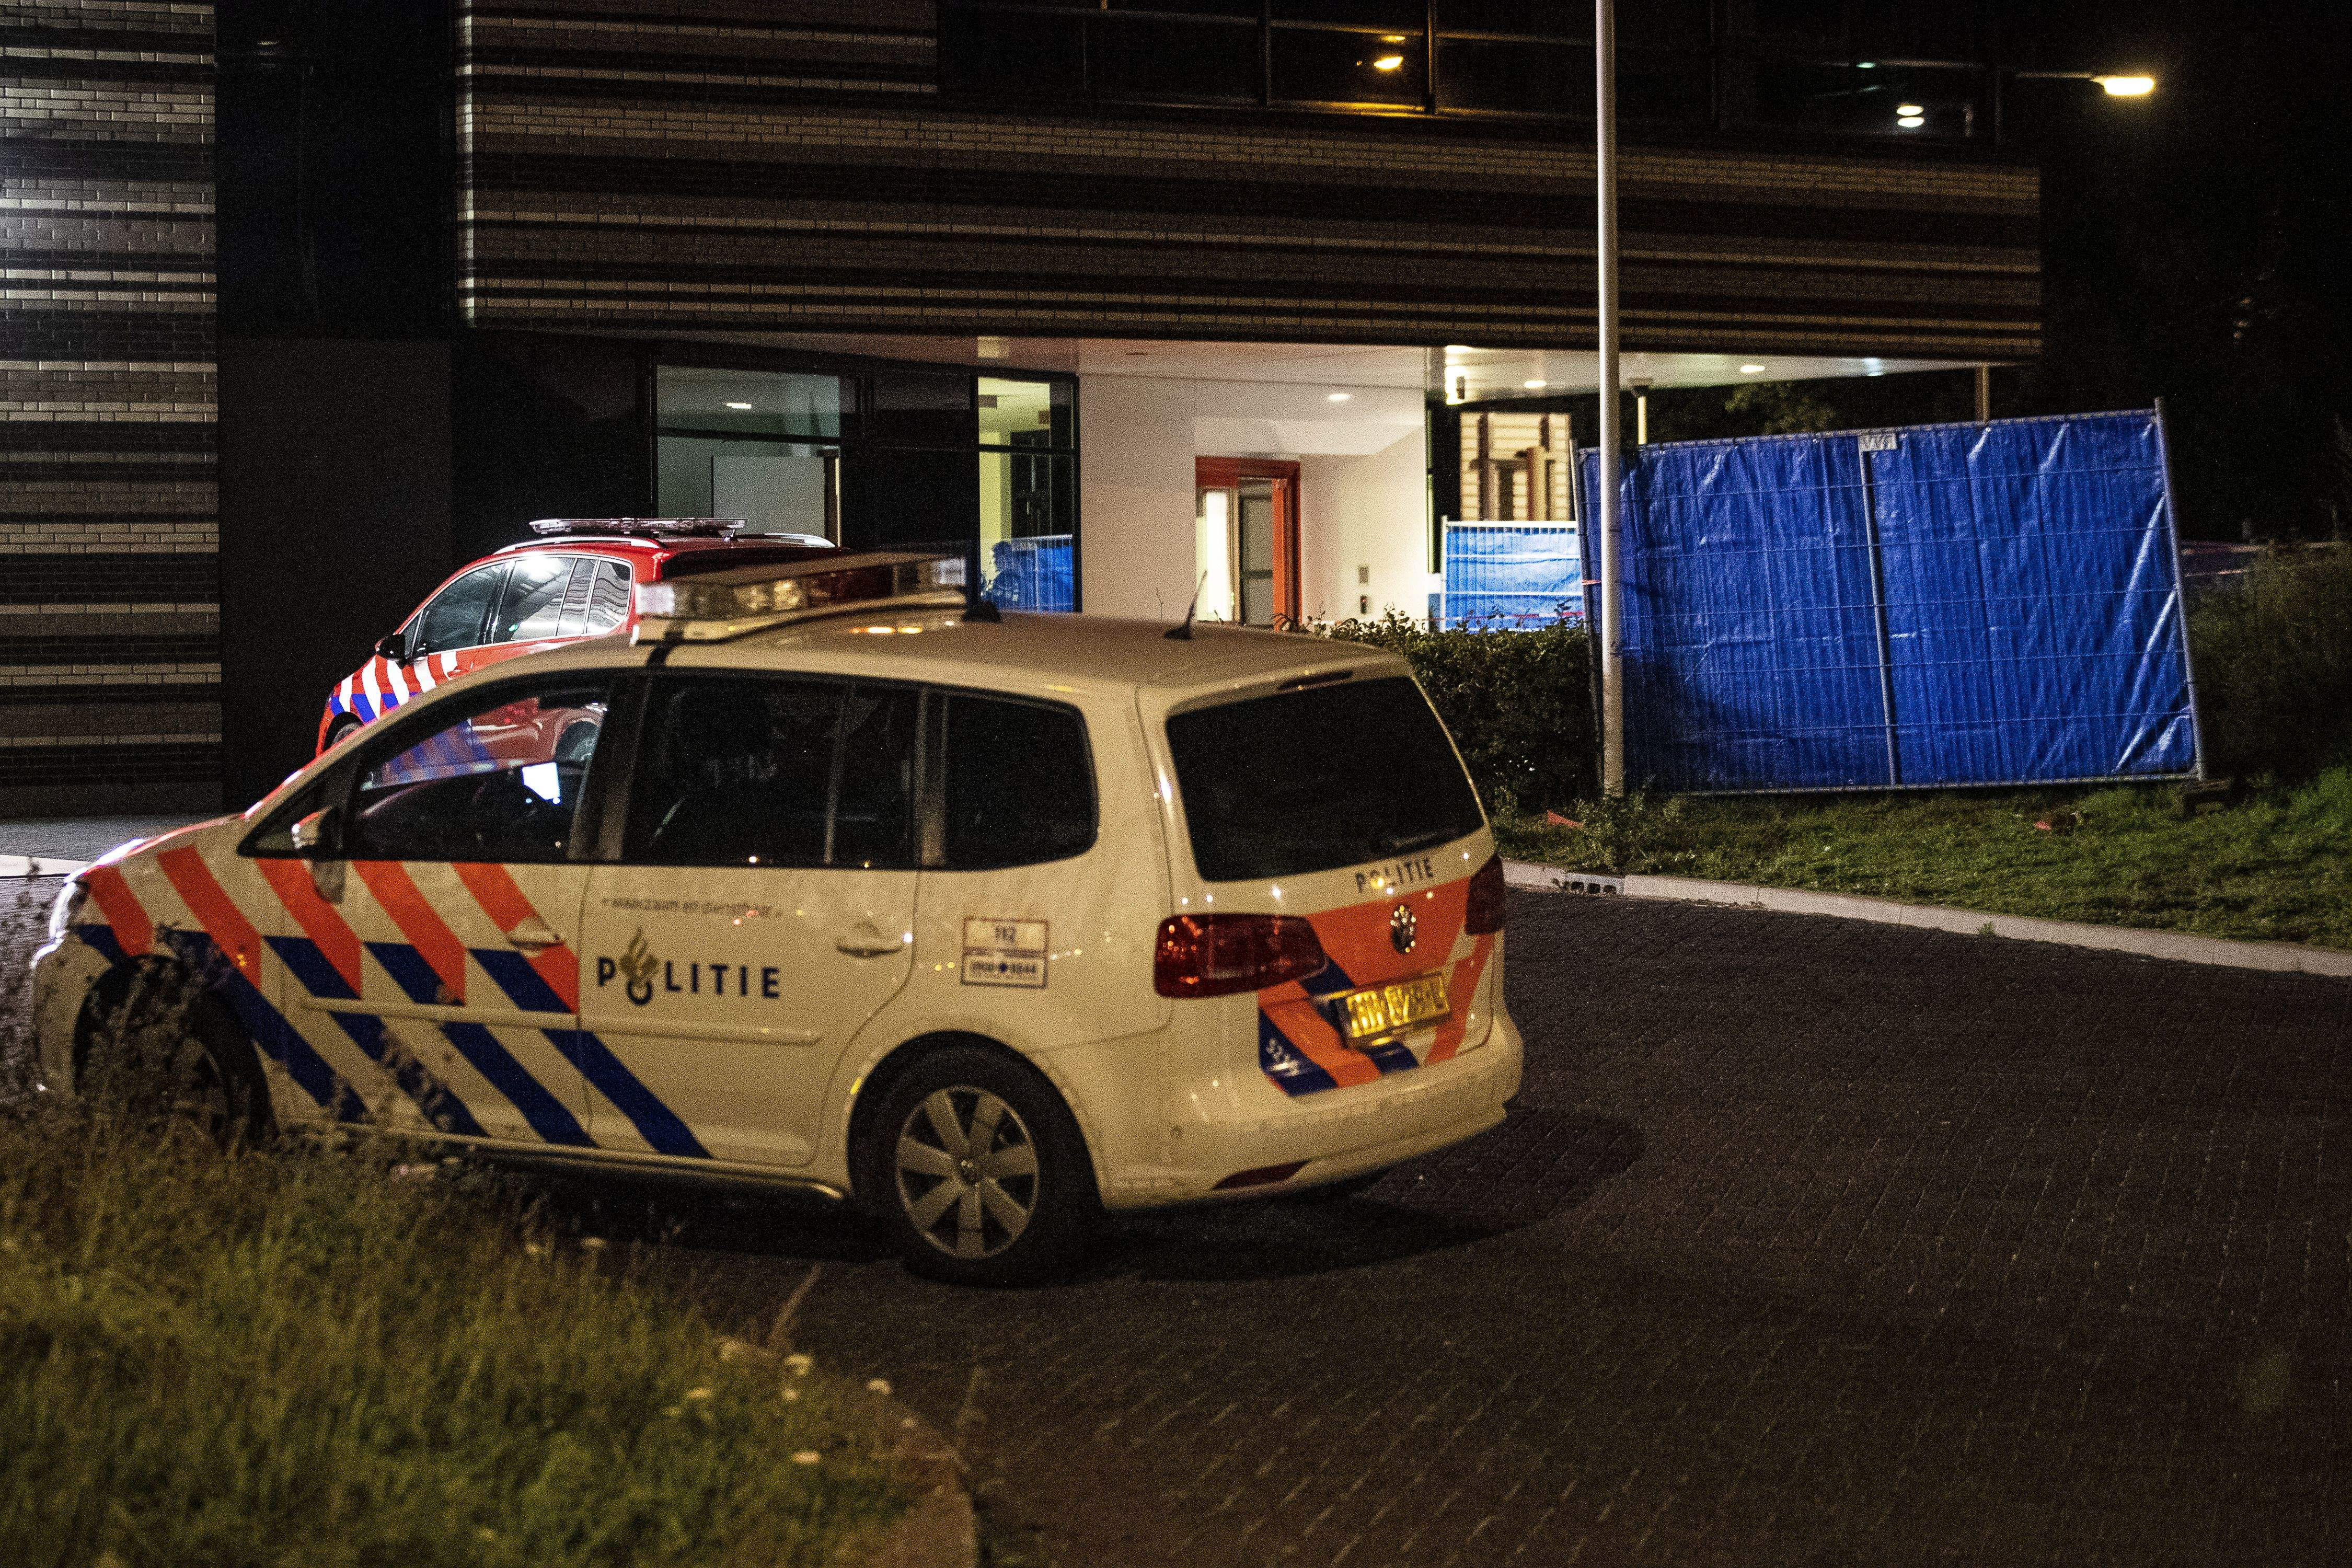 A police car is parked at a fire station in Amsterdam, where a car hit the facade after a shooting 18092019